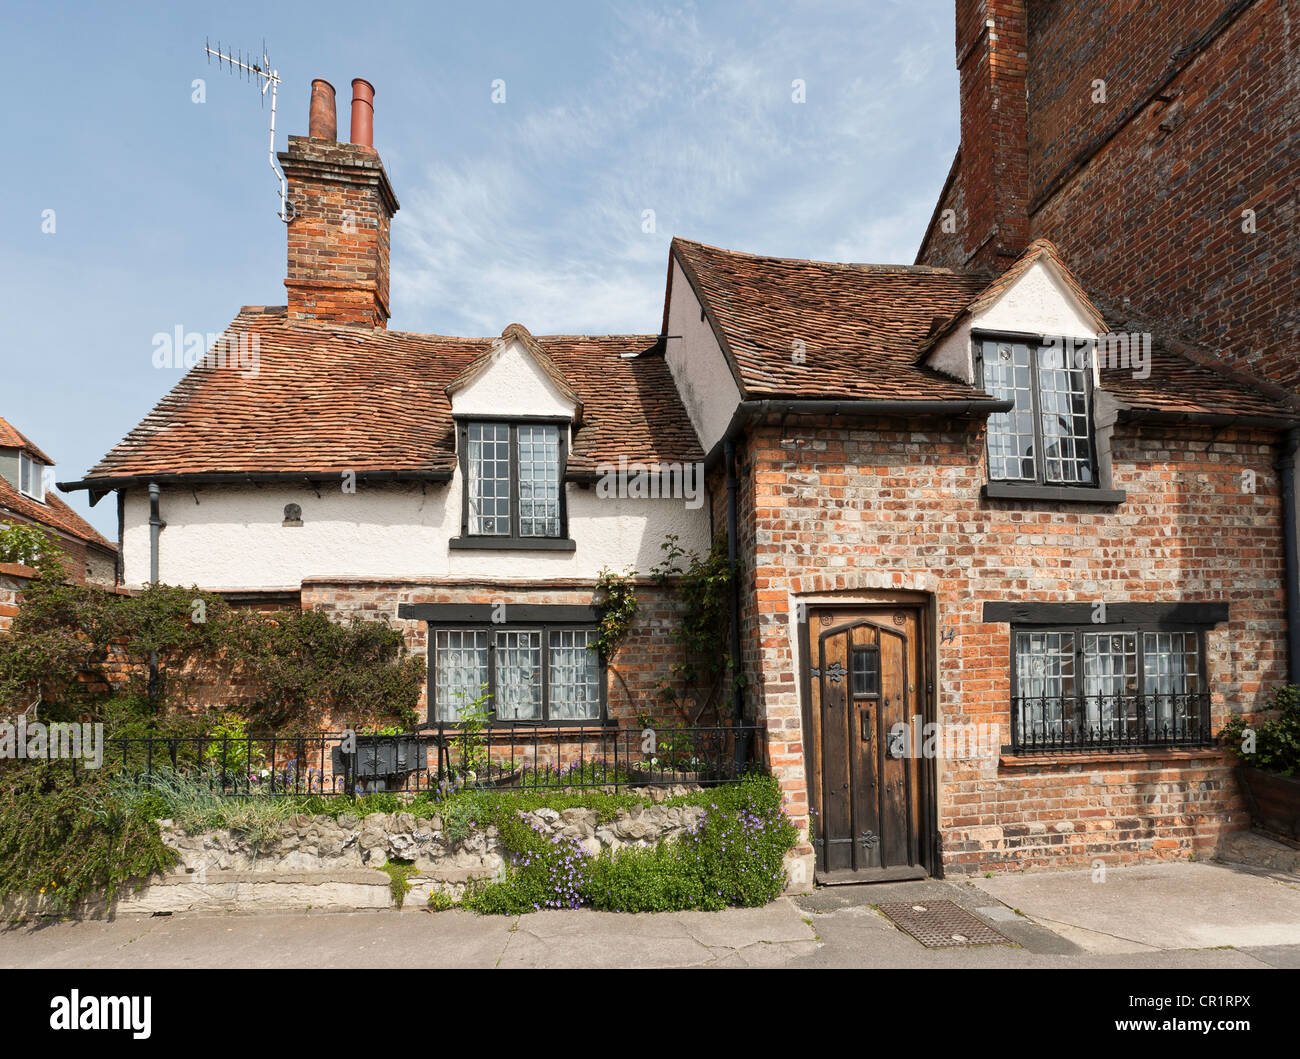 Old pretty cottage, Upper High Street, Thame, Oxfordshire, England - Stock Image